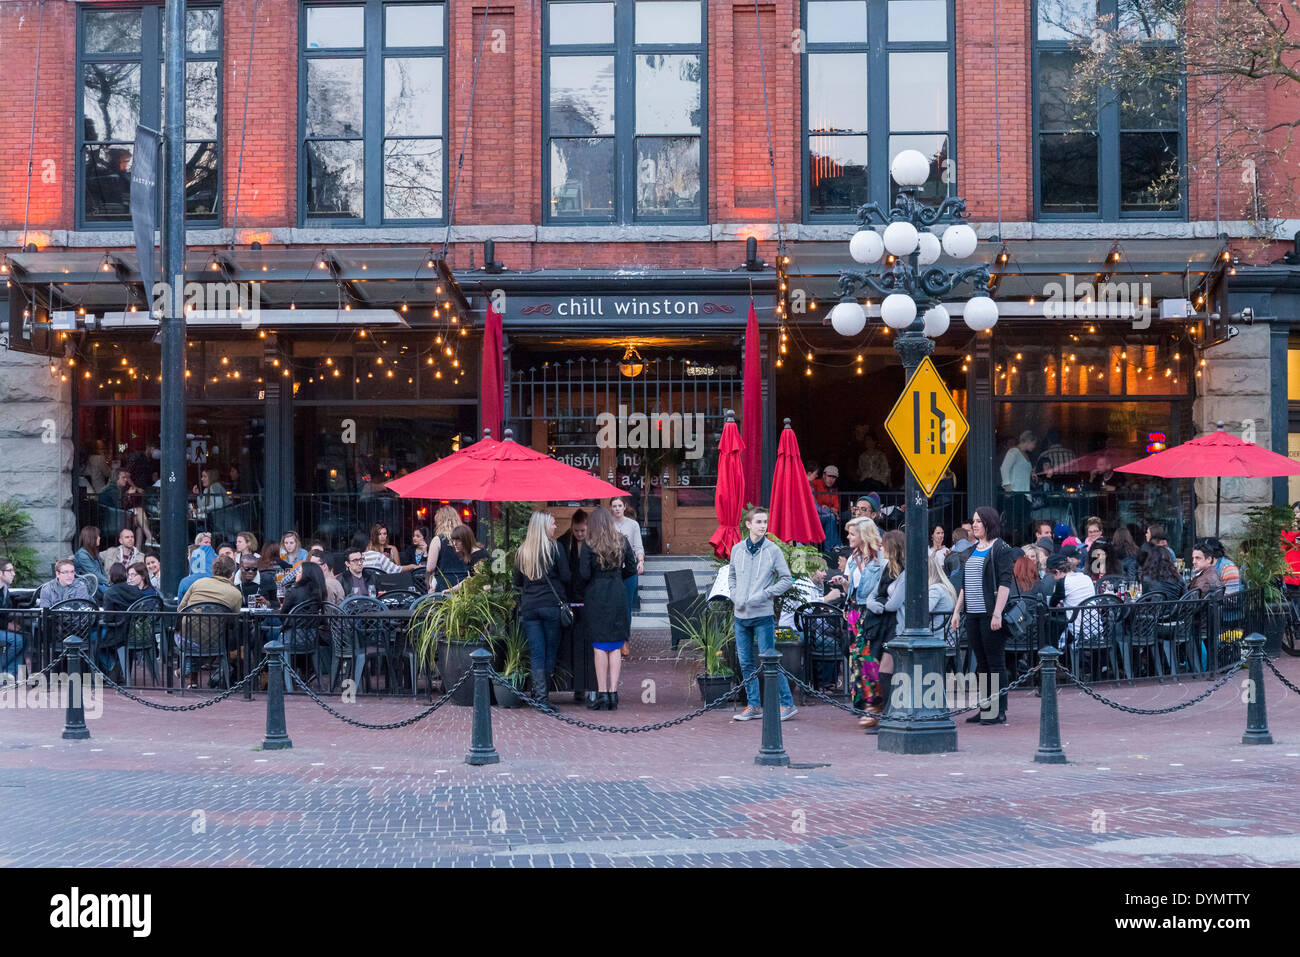 Search Results For Chill Winston Outdoor Patio Gastown Stock Photos And  Images